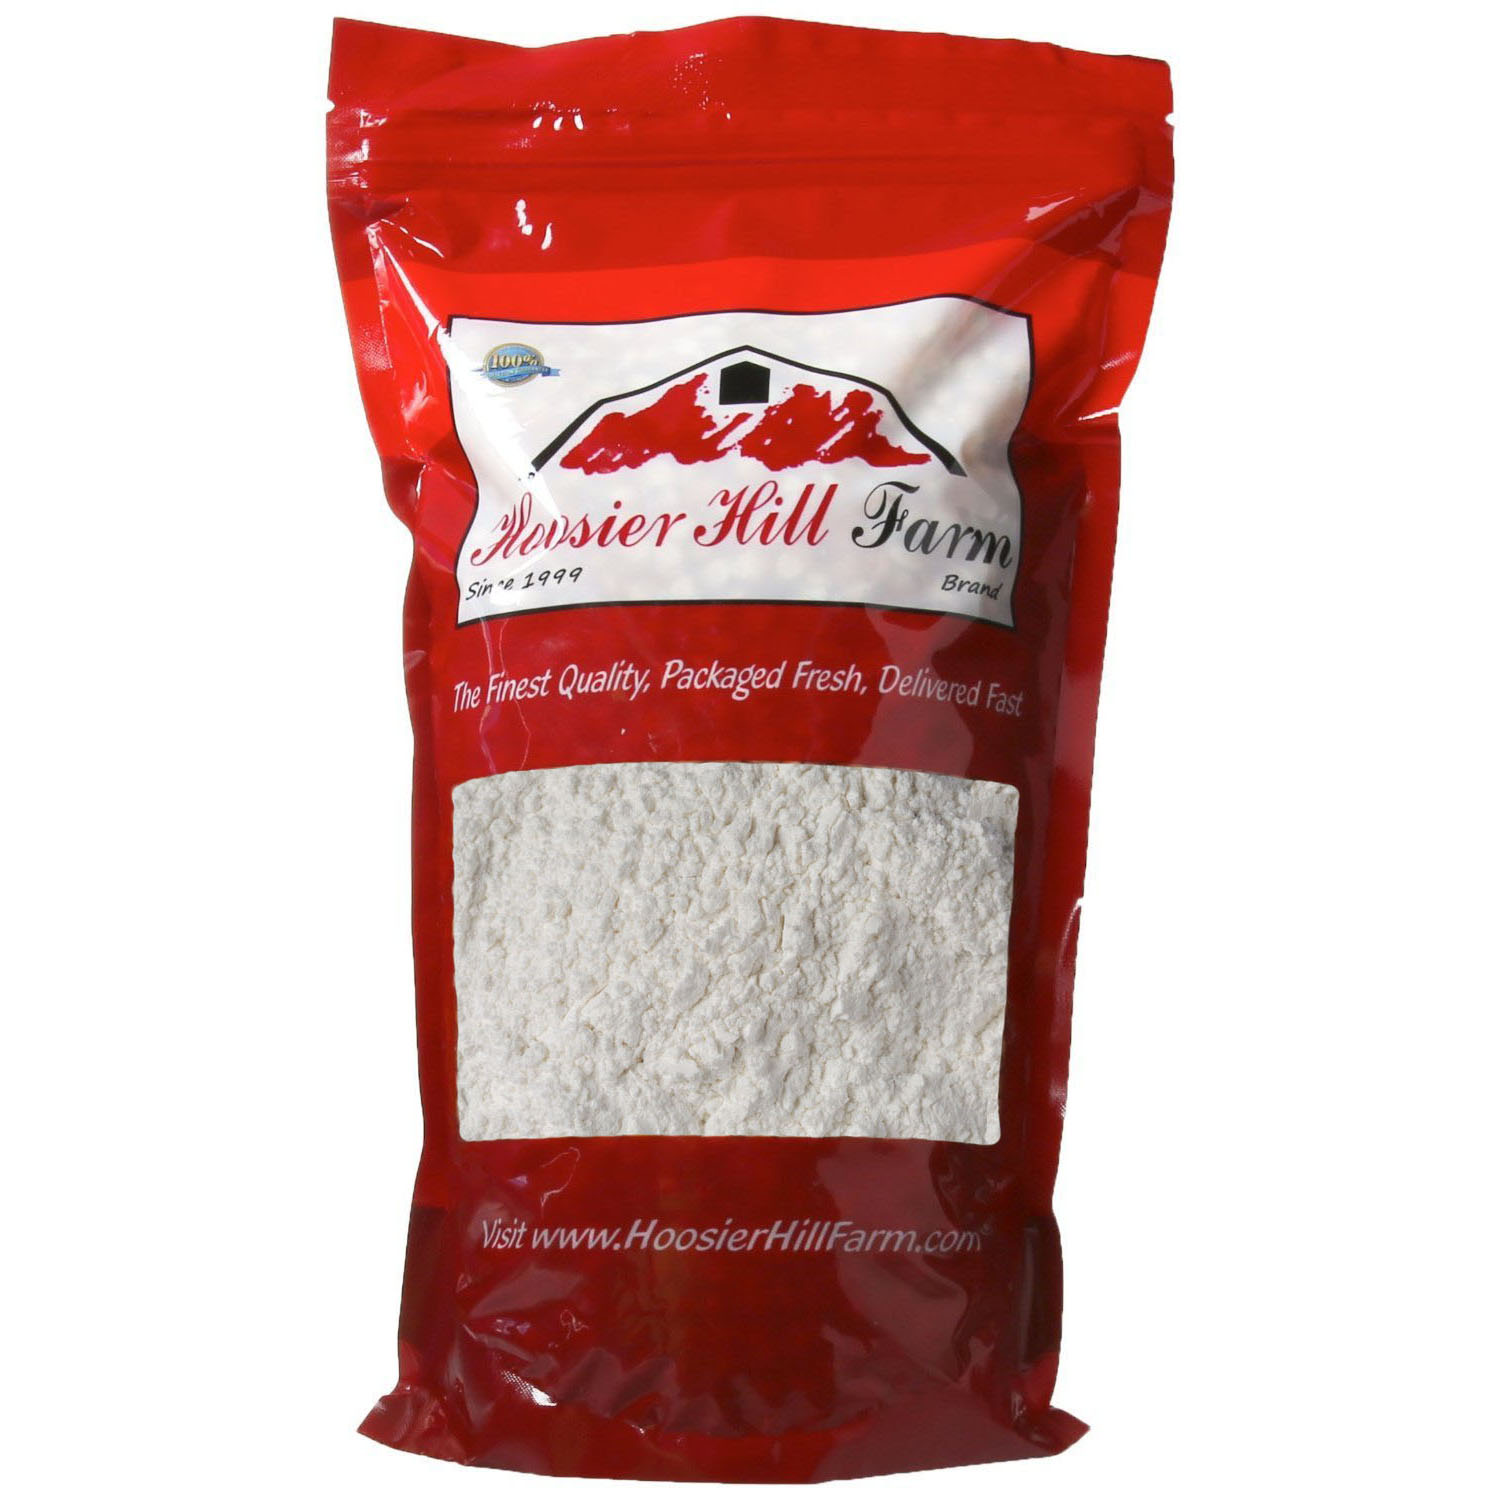 Hoosier Hill Farm Premium Arrowroot Powder, 2 Lb.